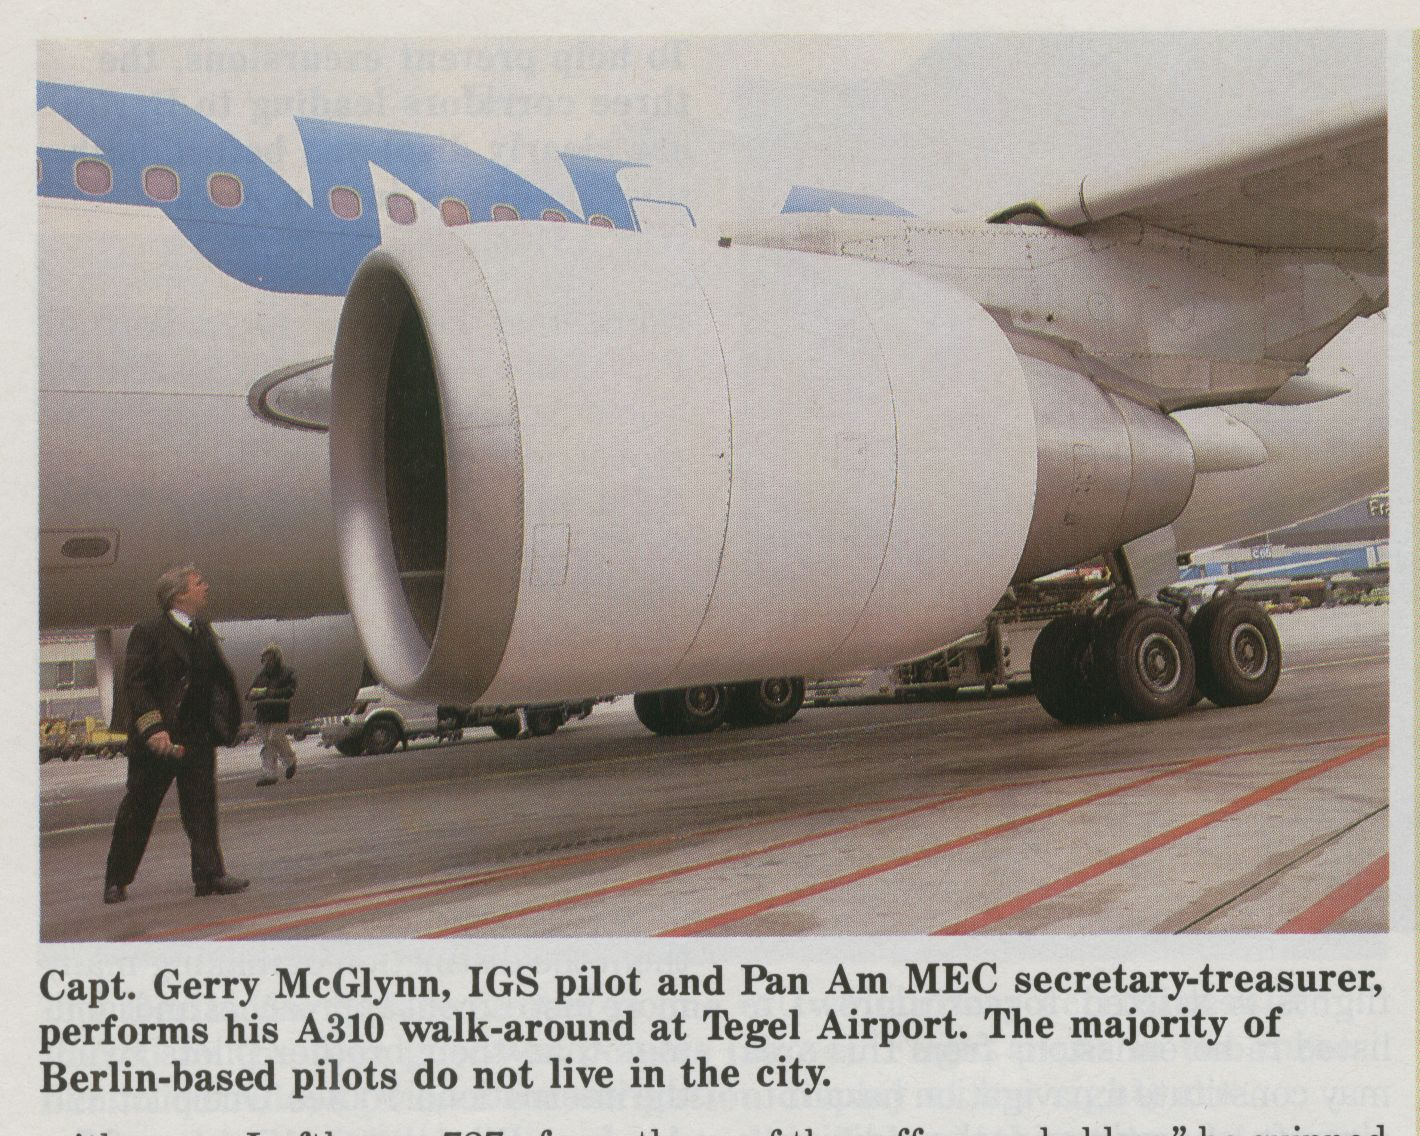 1986, Apri, Captain Gerry McGlynn on a pre-flight inspecting of an Airbus A310 at Frankfurt Airport.